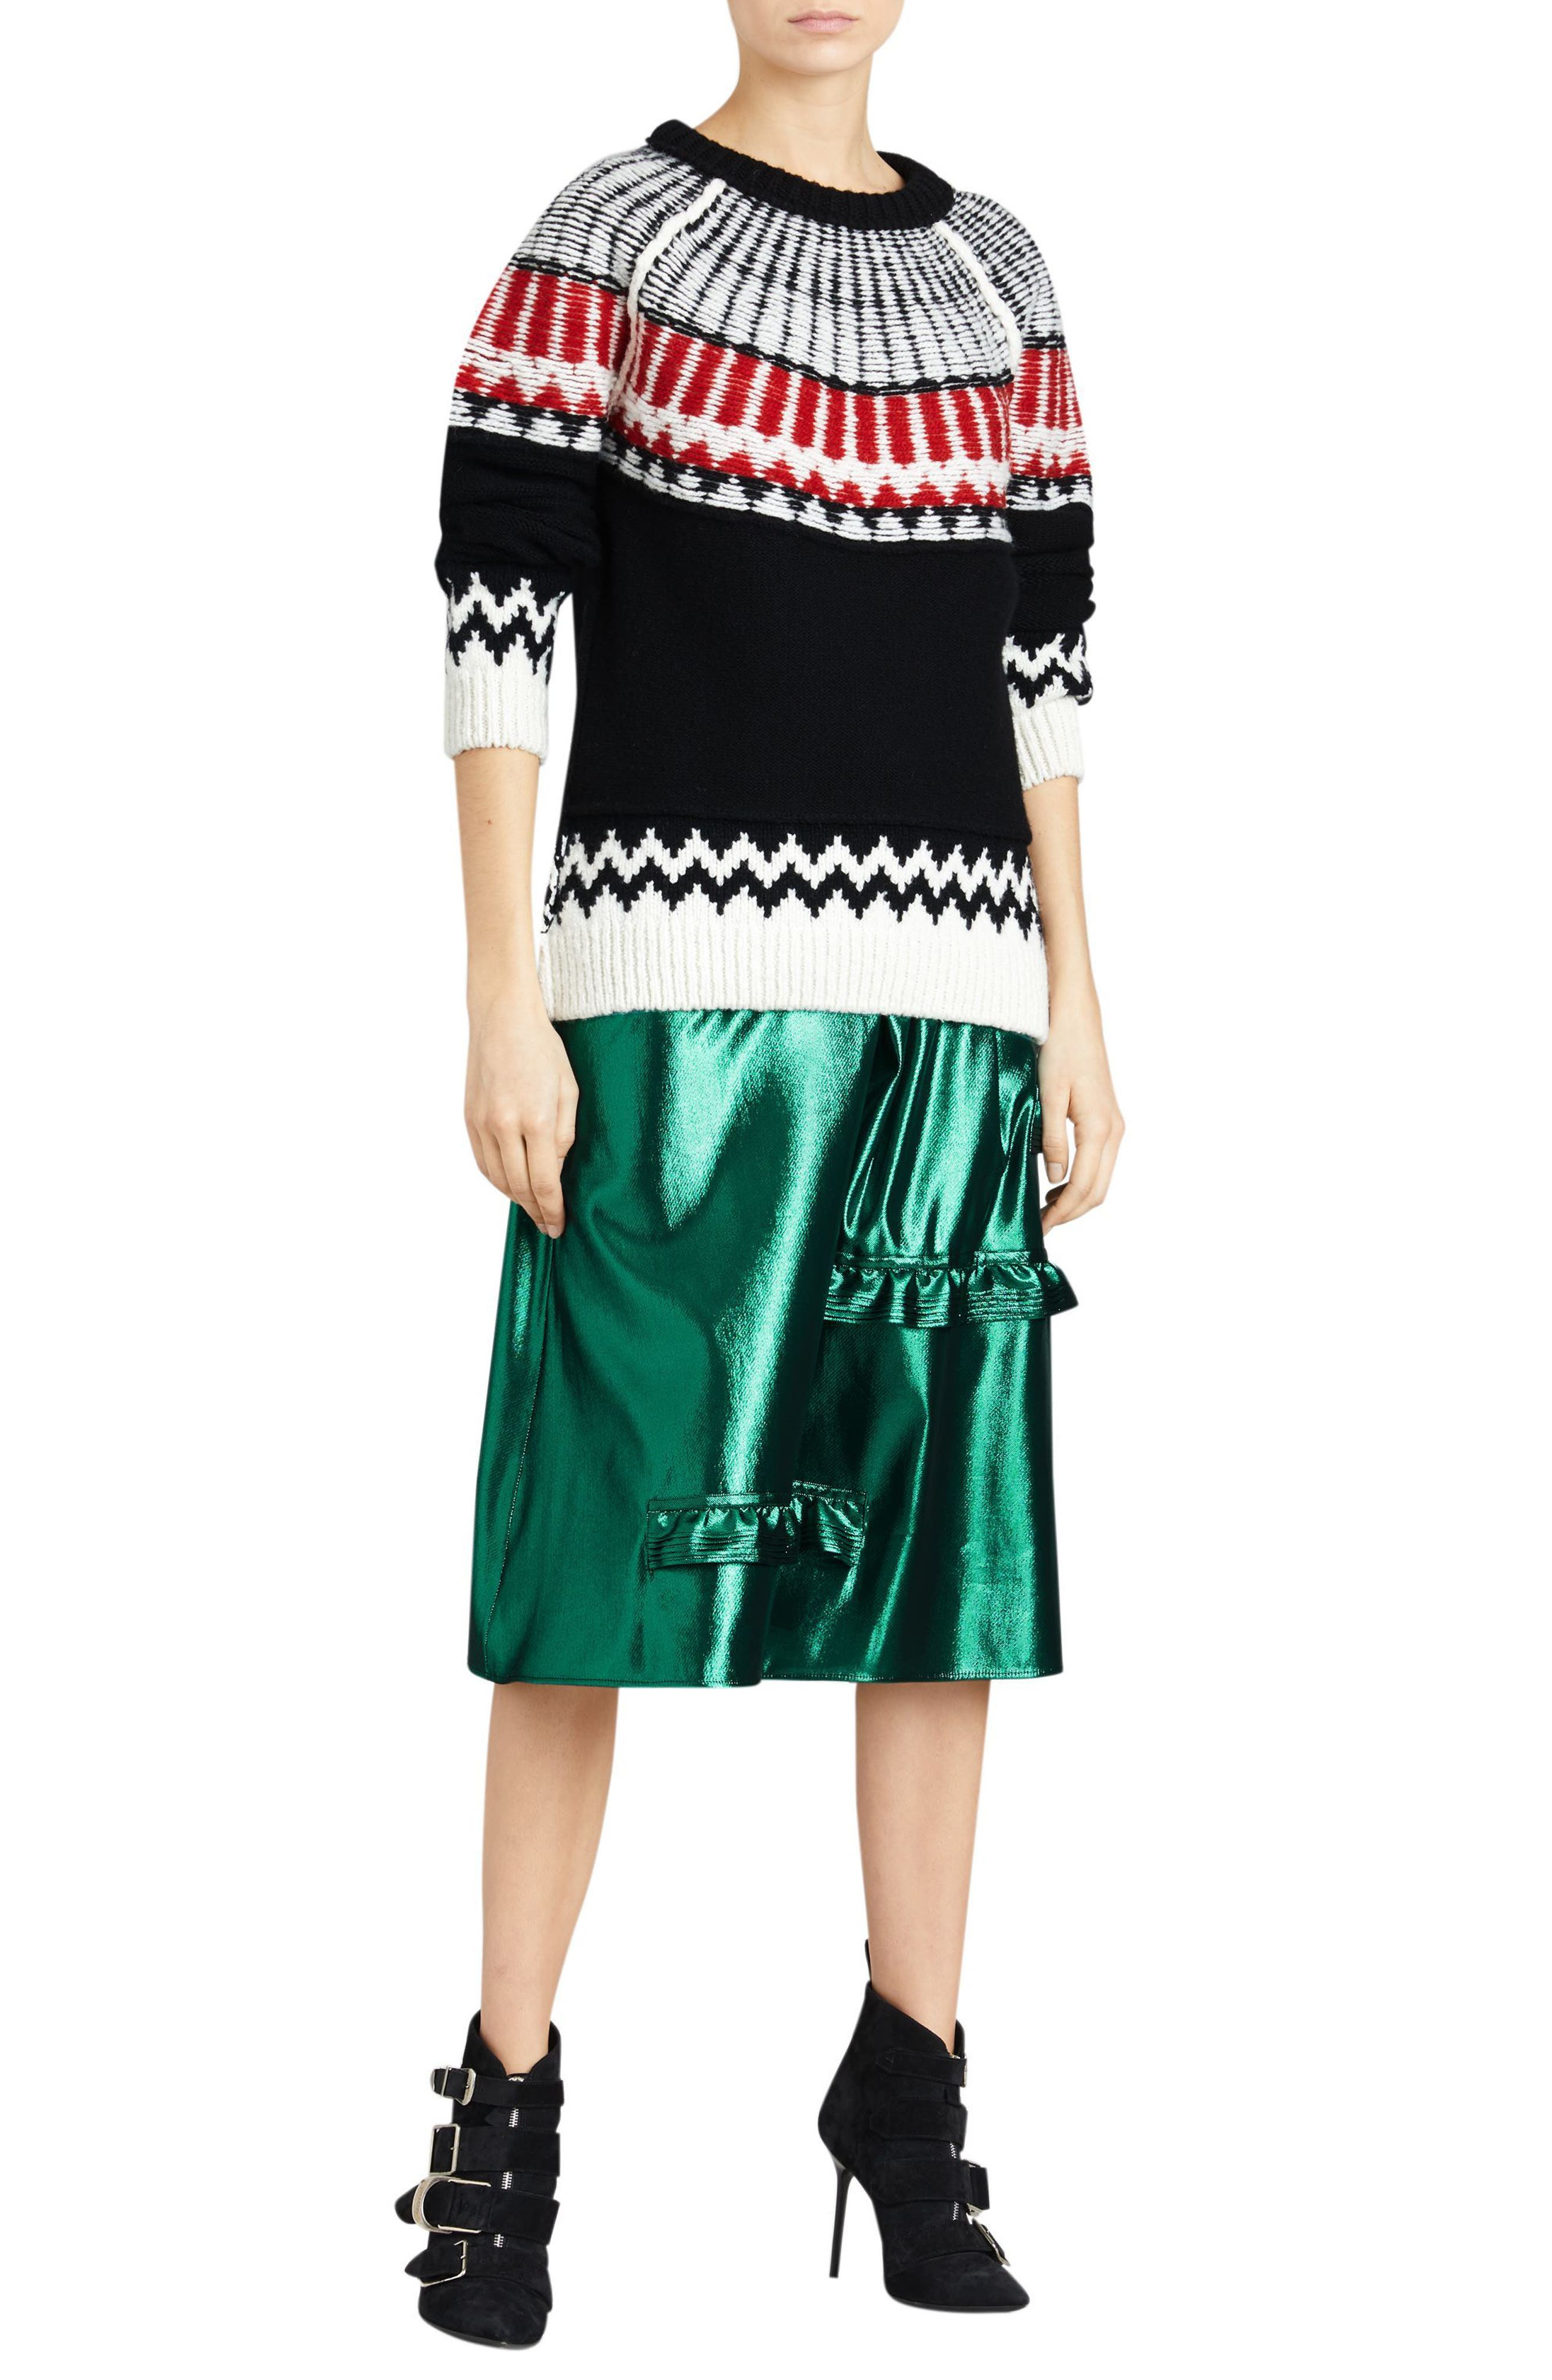 Trycroft Fair Isle Wool Blend Sweater,                             Alternate thumbnail 5, color,                             Black/ Military Red